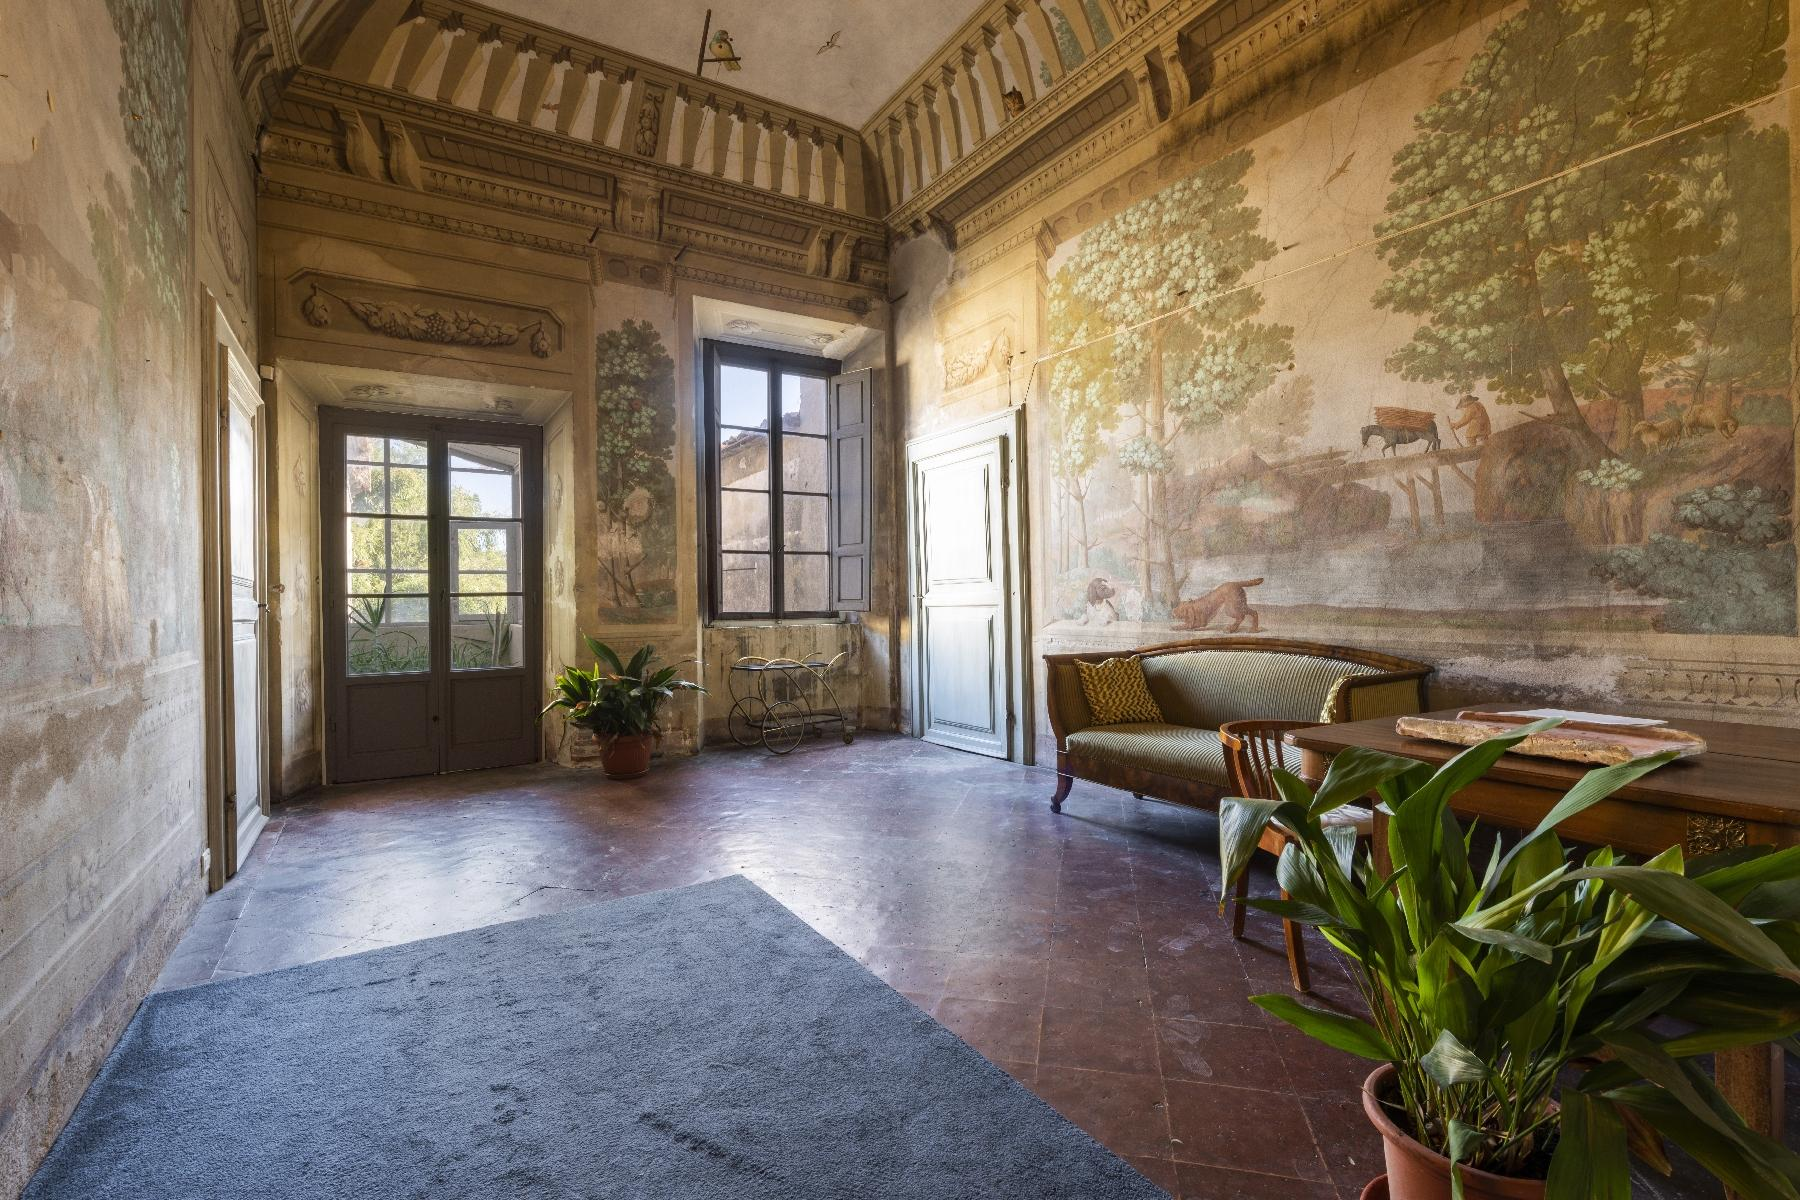 Stunning 18th century villa in the heart of Tuscany - 2